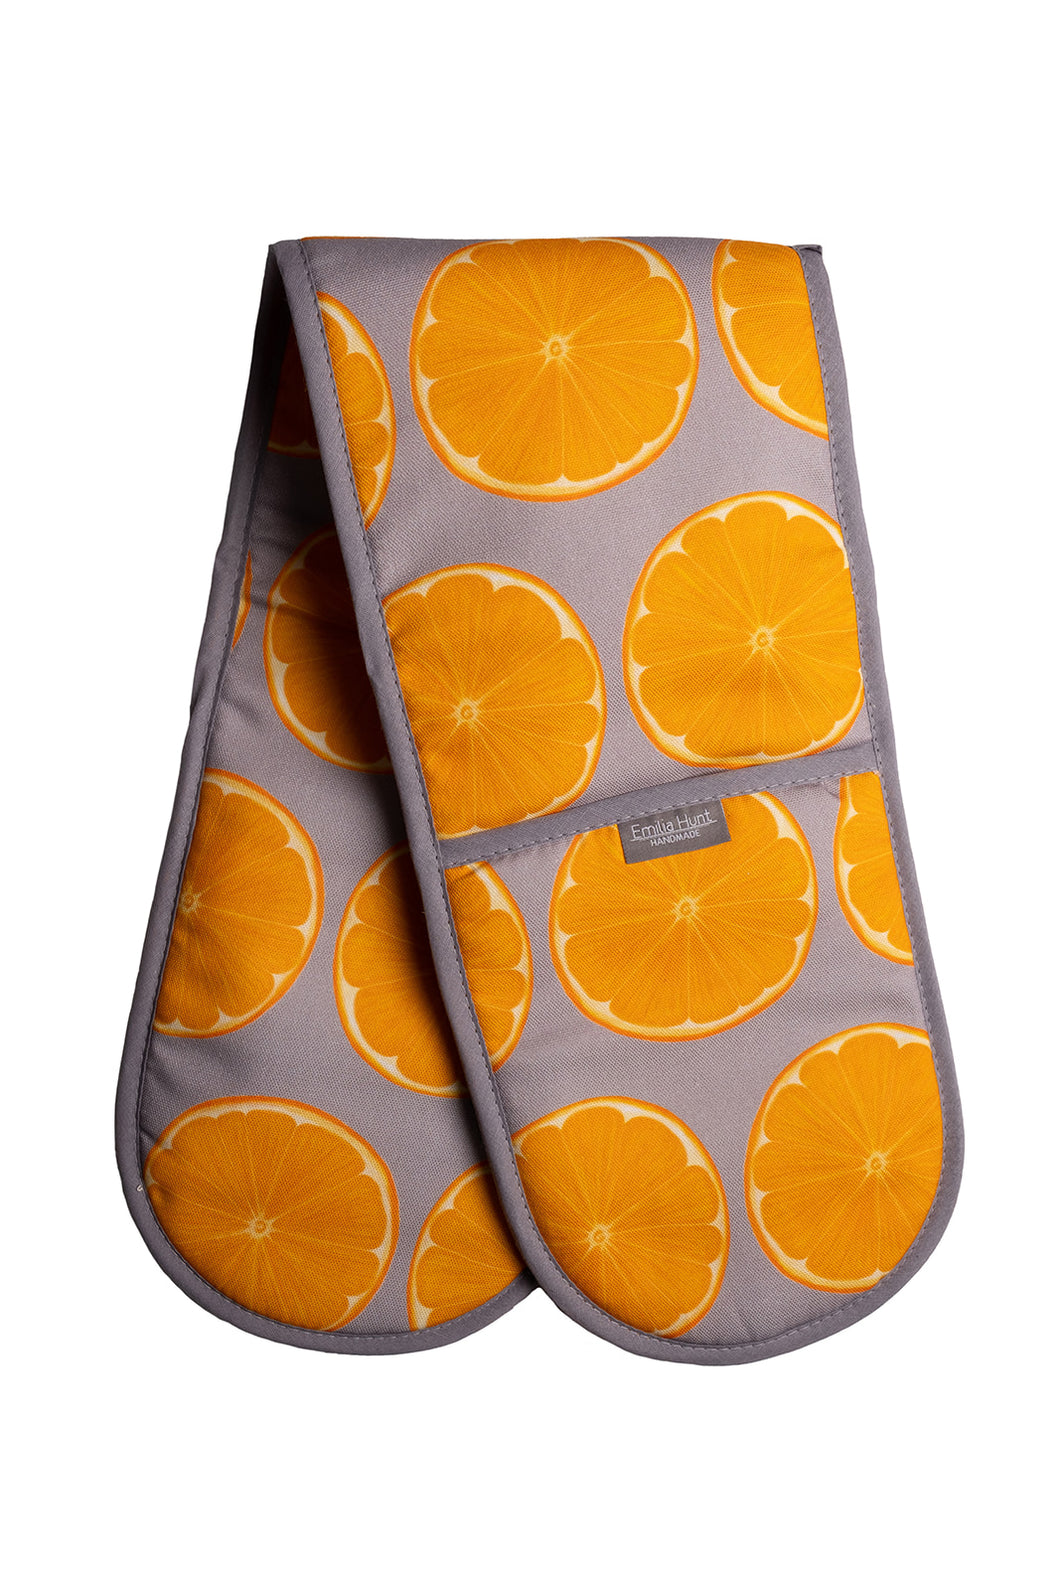 Grey Orange Slice Double Oven Gloves